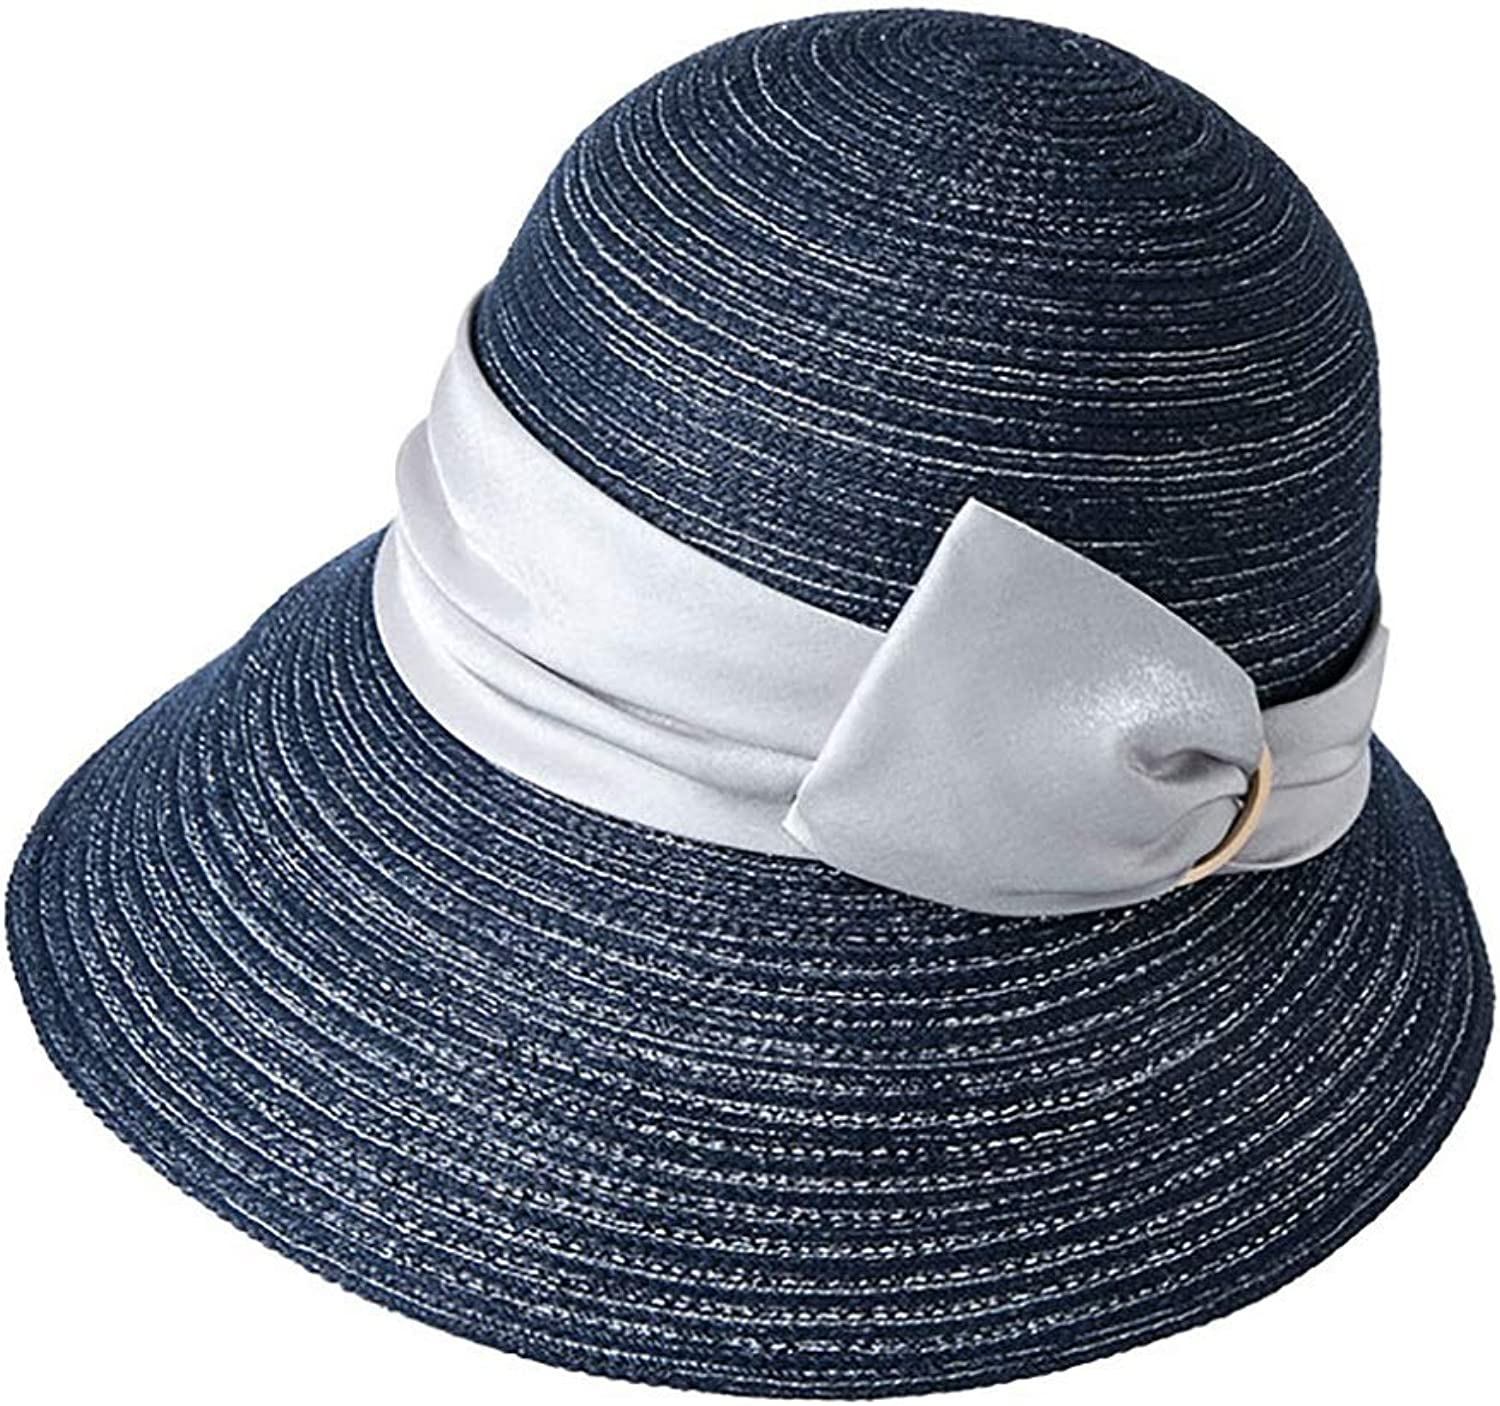 Women's Straw Hat Sun Hat Solid color Hat Hat Simple Style UV Predection Foldable White orange Beige bluee (color   bluee)